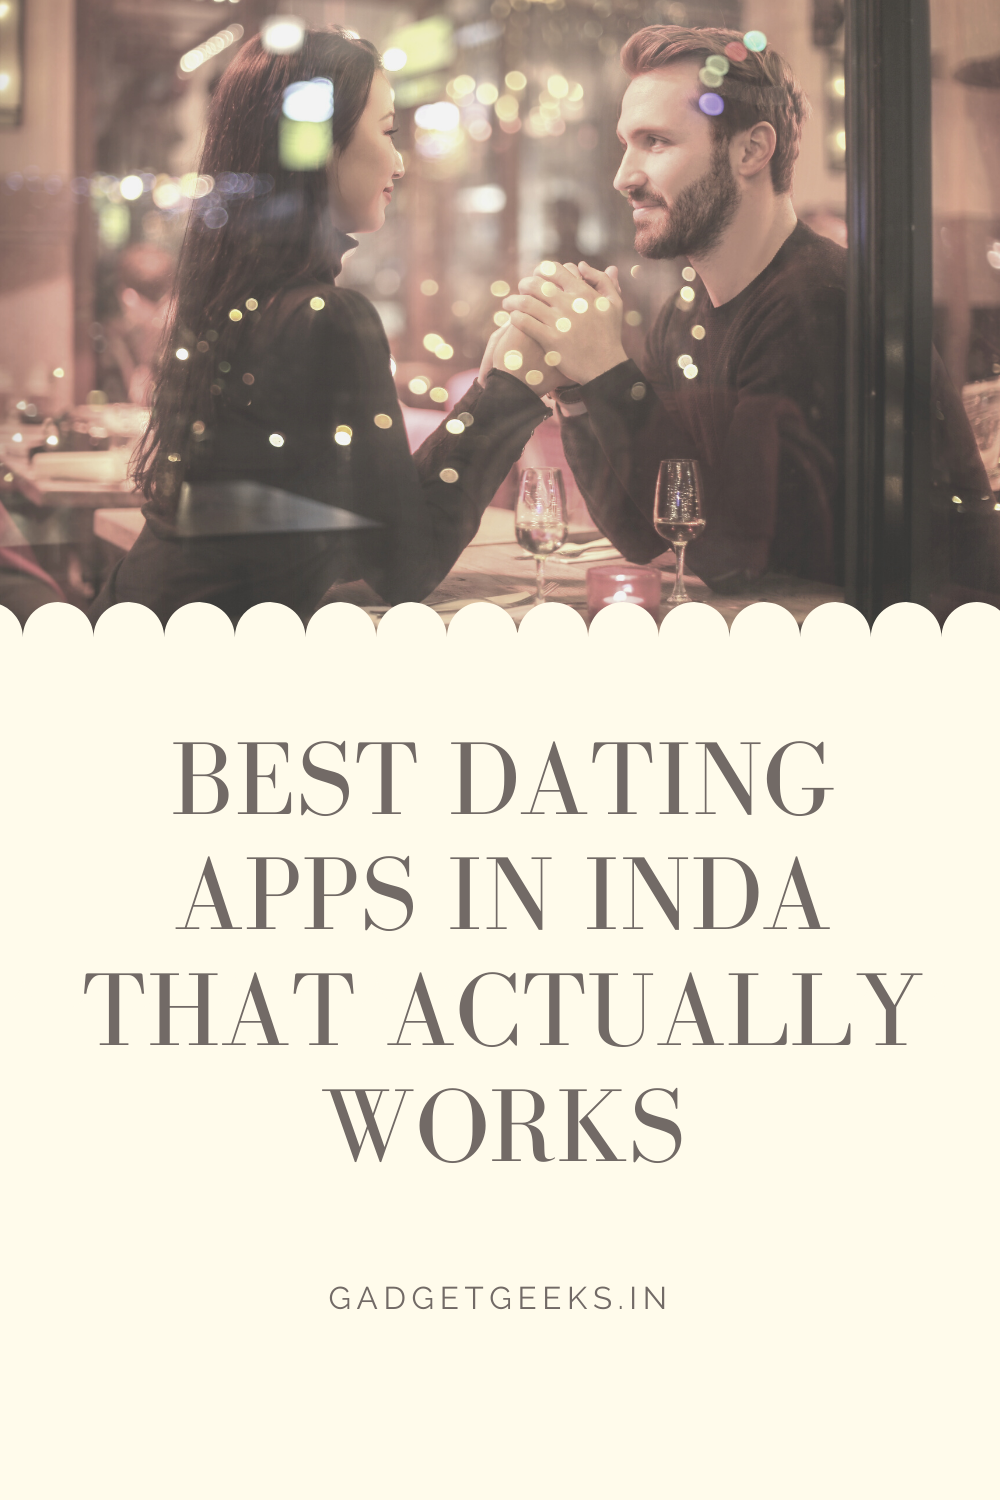 11 Best Free Dating Apps in India that actually Works in